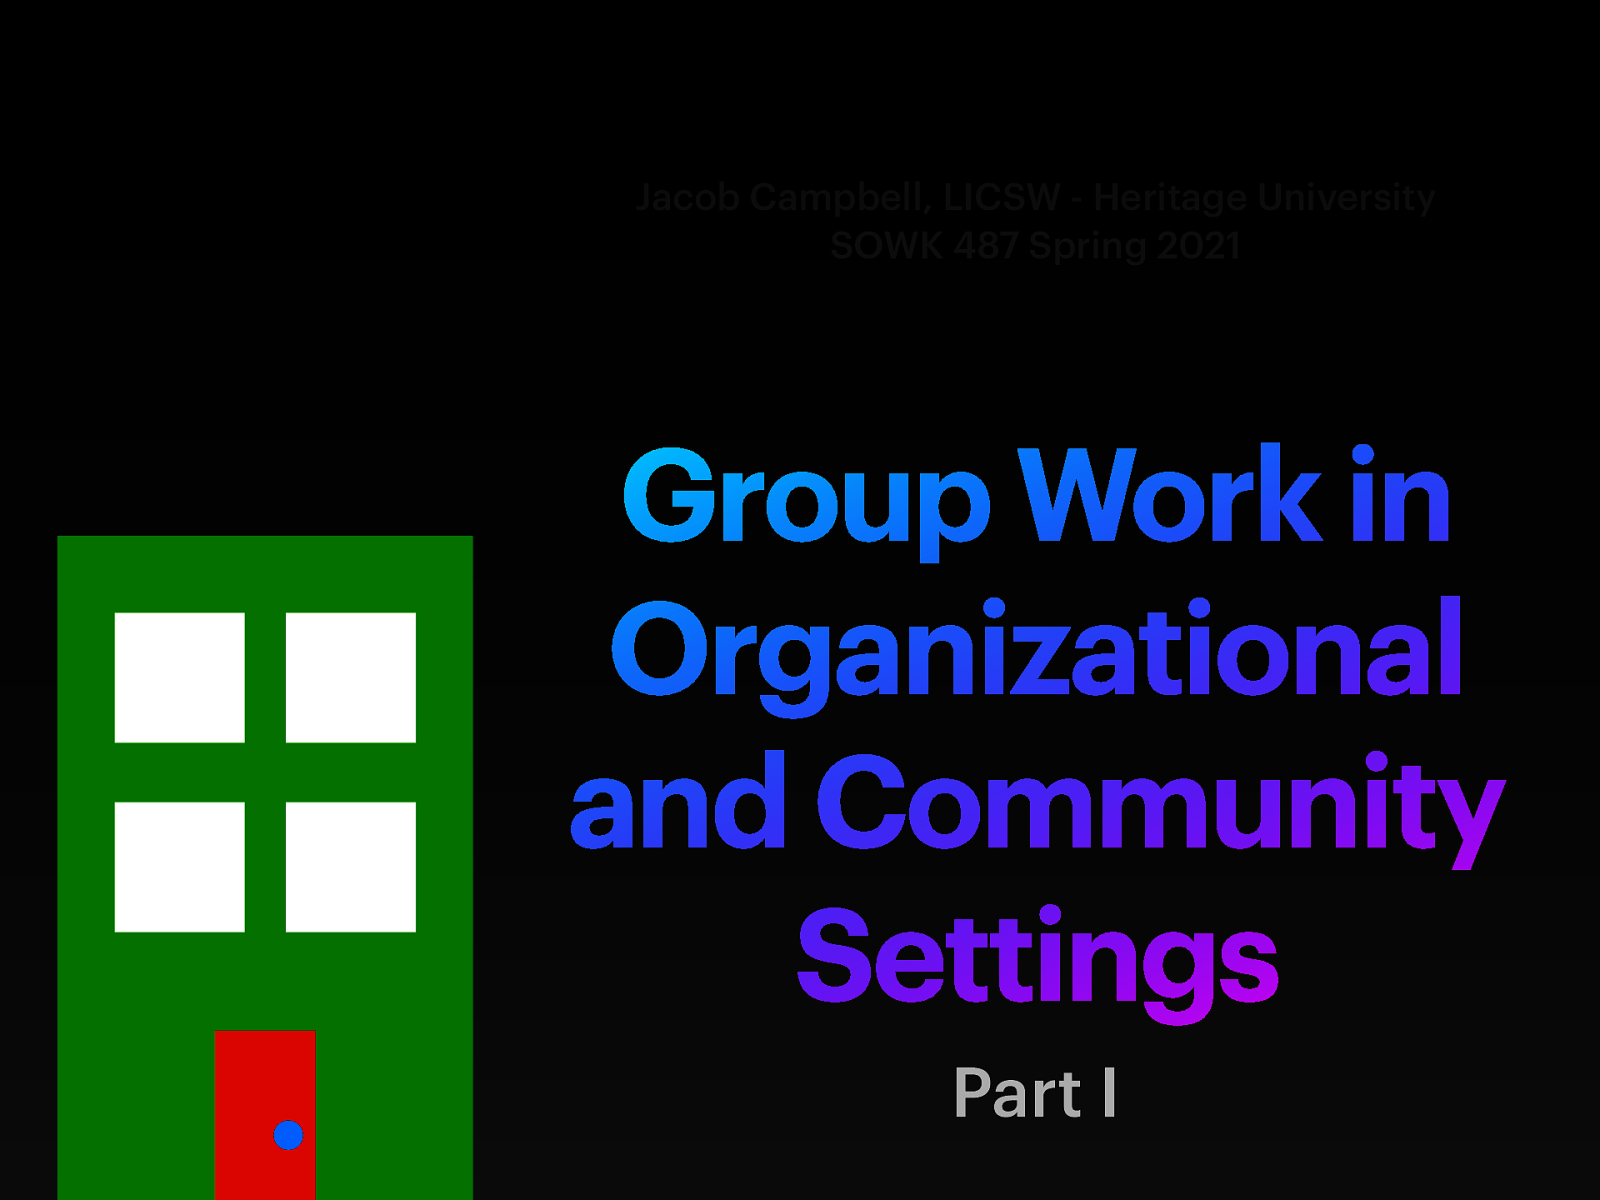 SOWK 487 Week 14 - Group Work in Organizational and Community Settings Part I